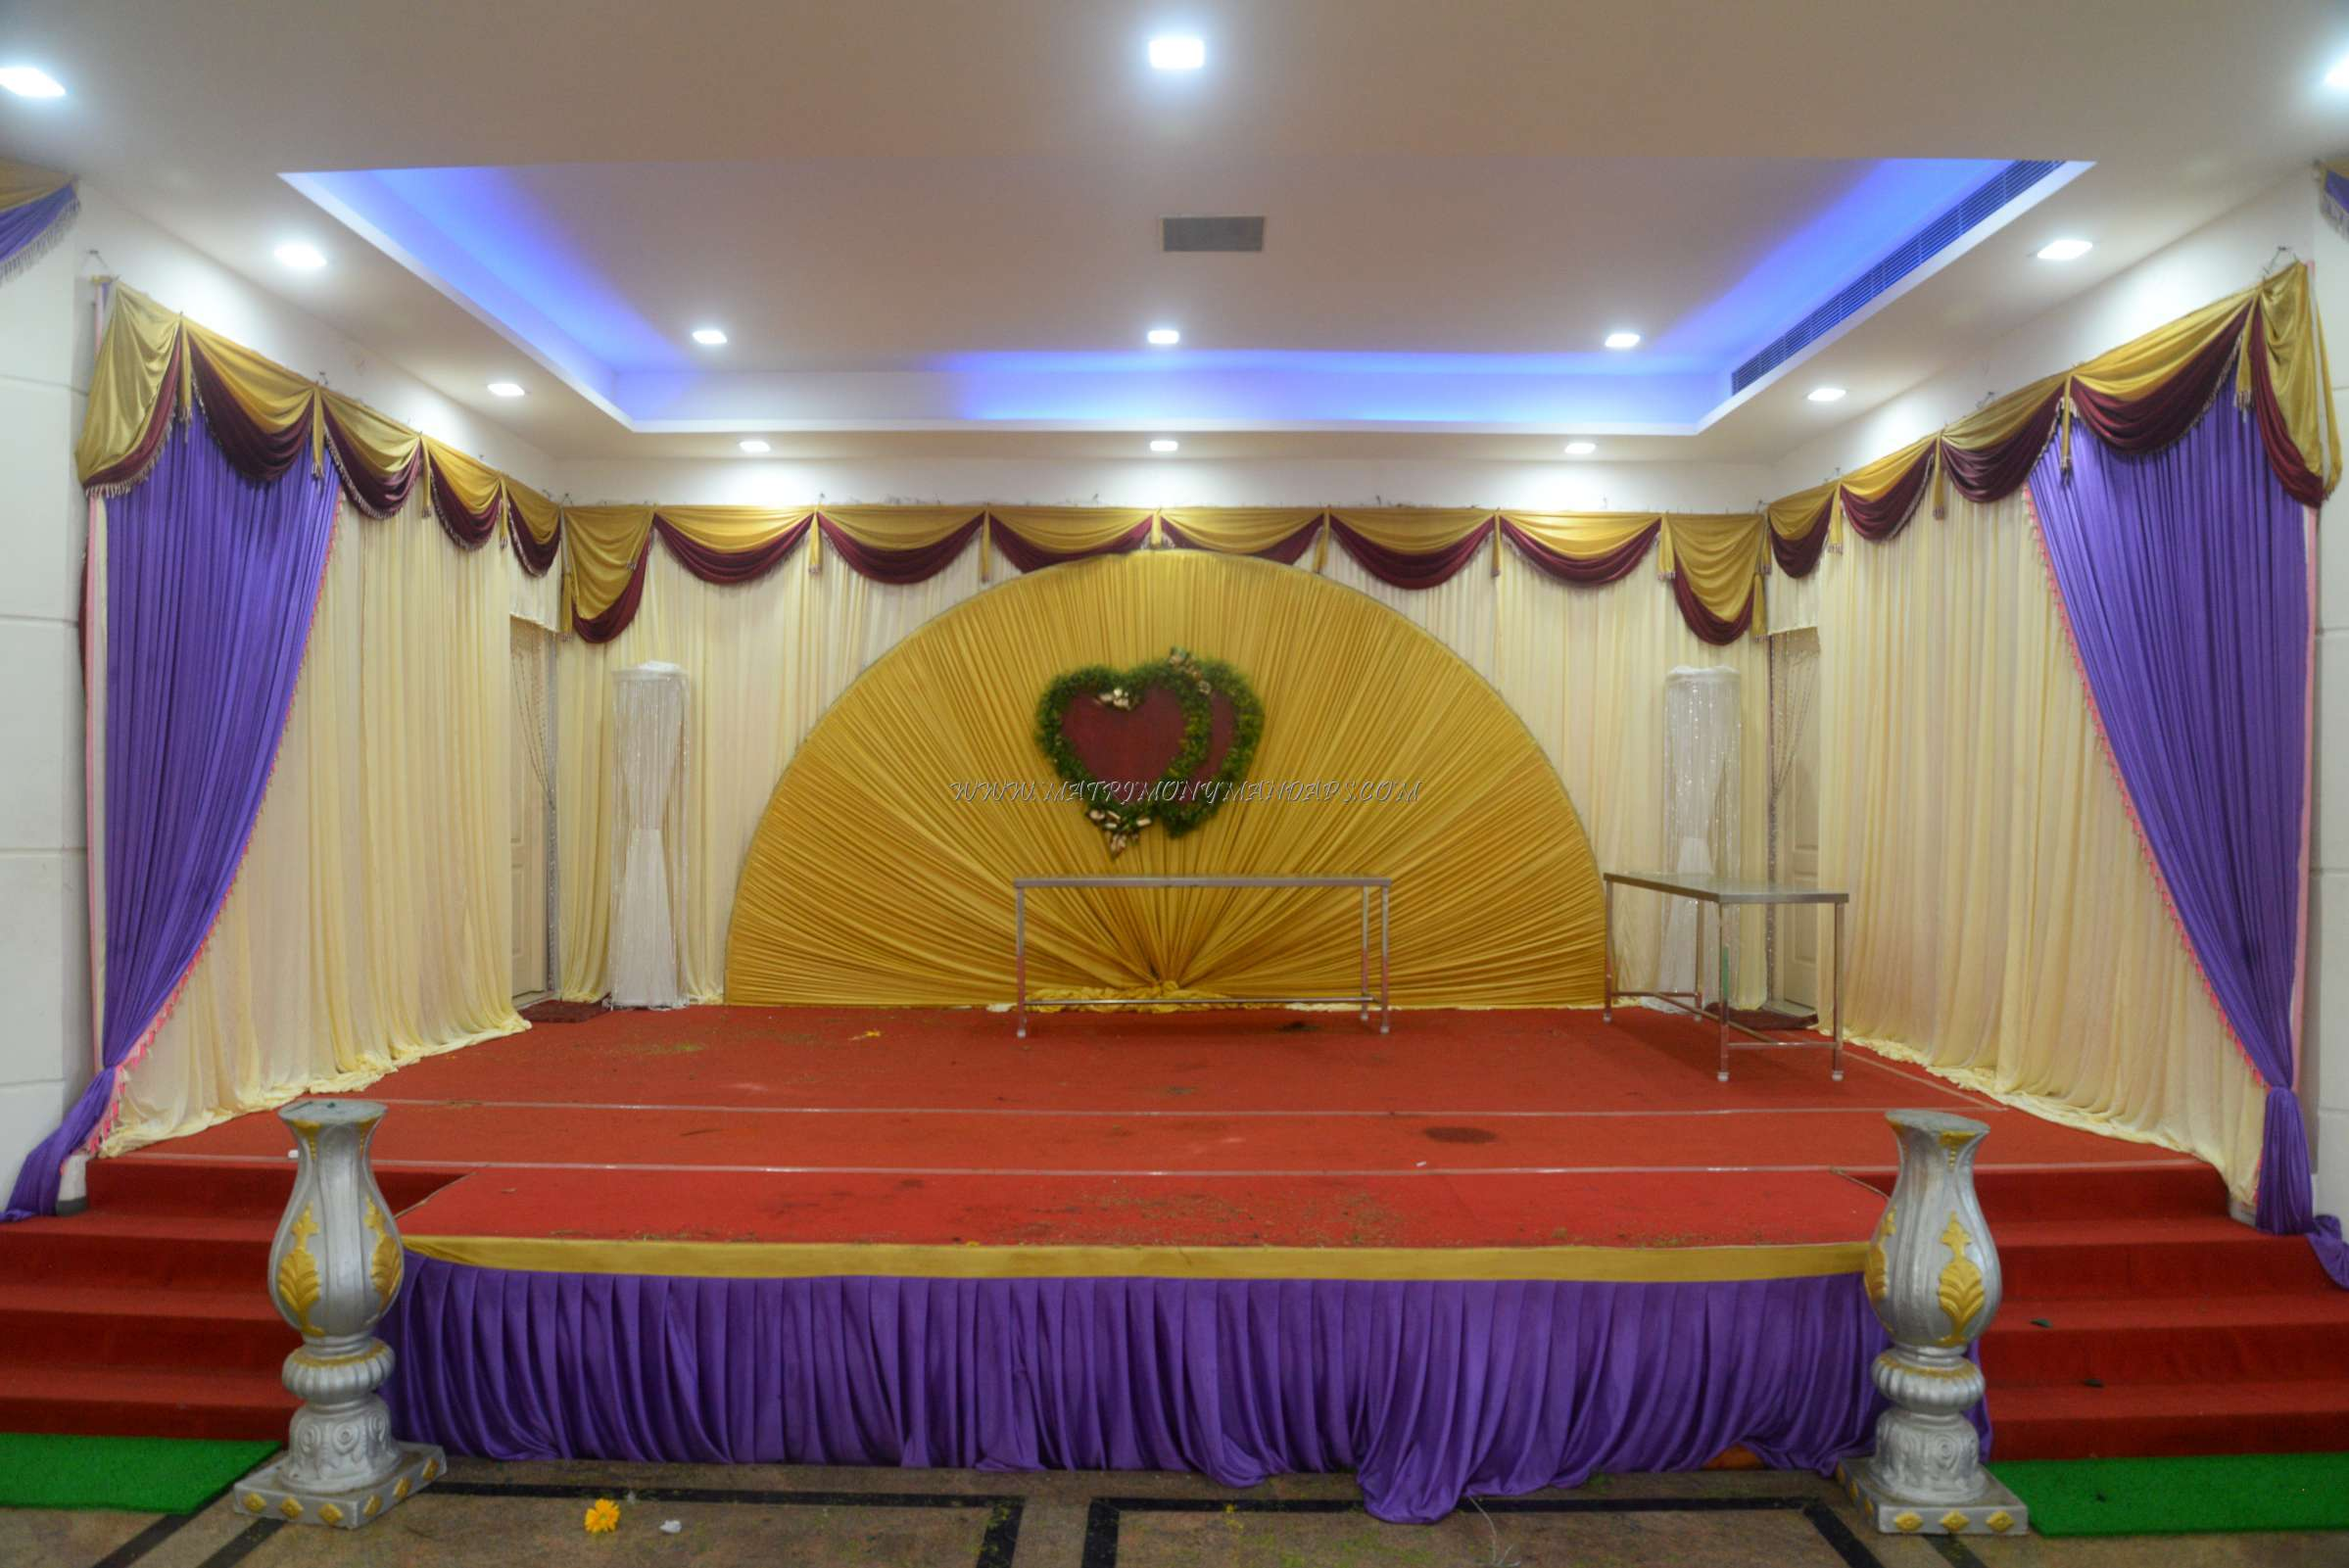 Find the availability of the Sri Vishnu Mahal (A/C) in Avadi, Chennai and avail special offers